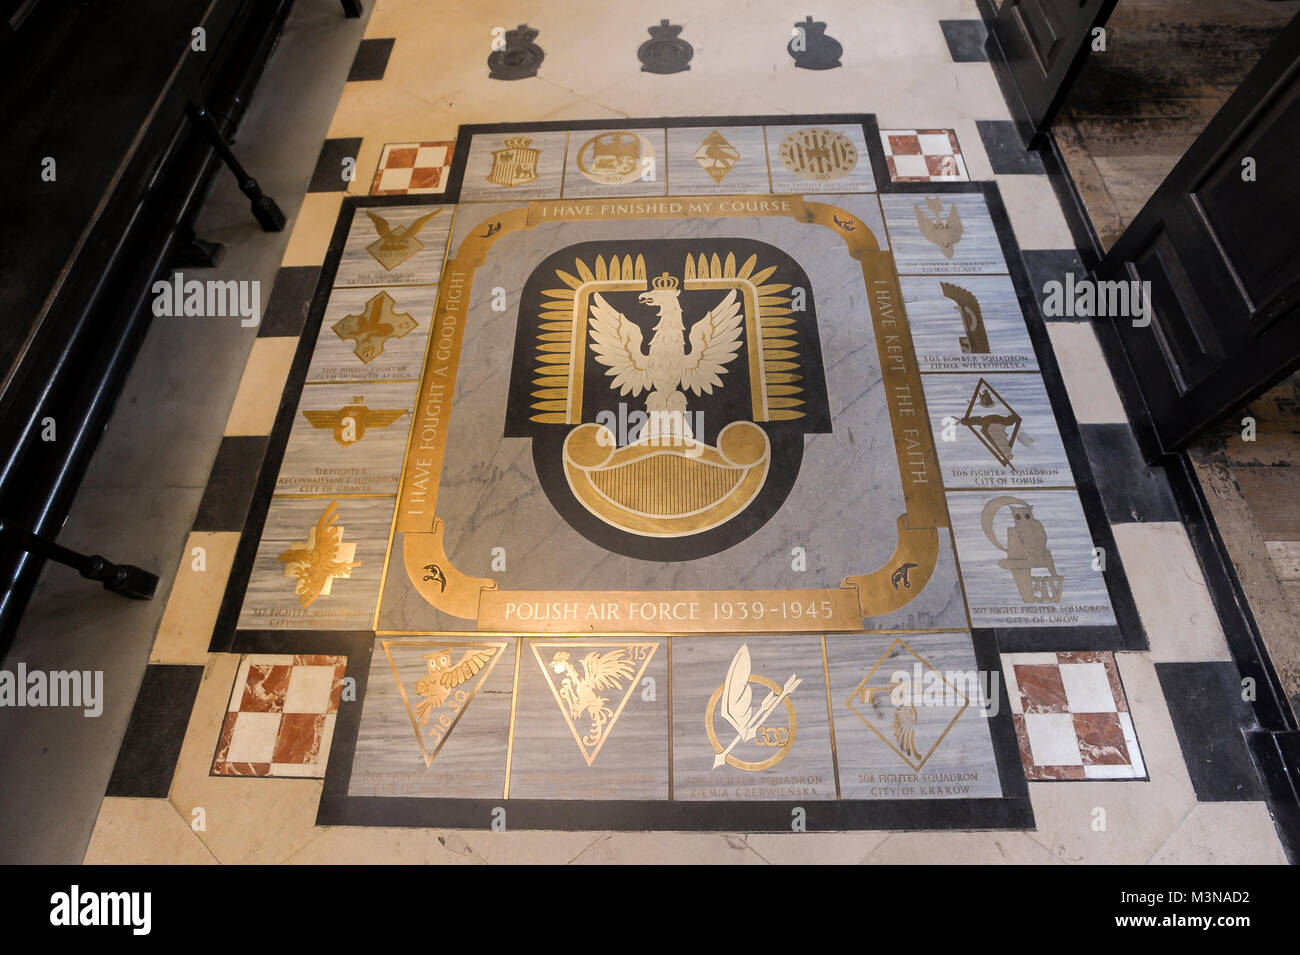 The Polish Air Forces memorial on the floor of the Baroque  St Clement Danes church built 1682 by Christopher Wren - Stock Image